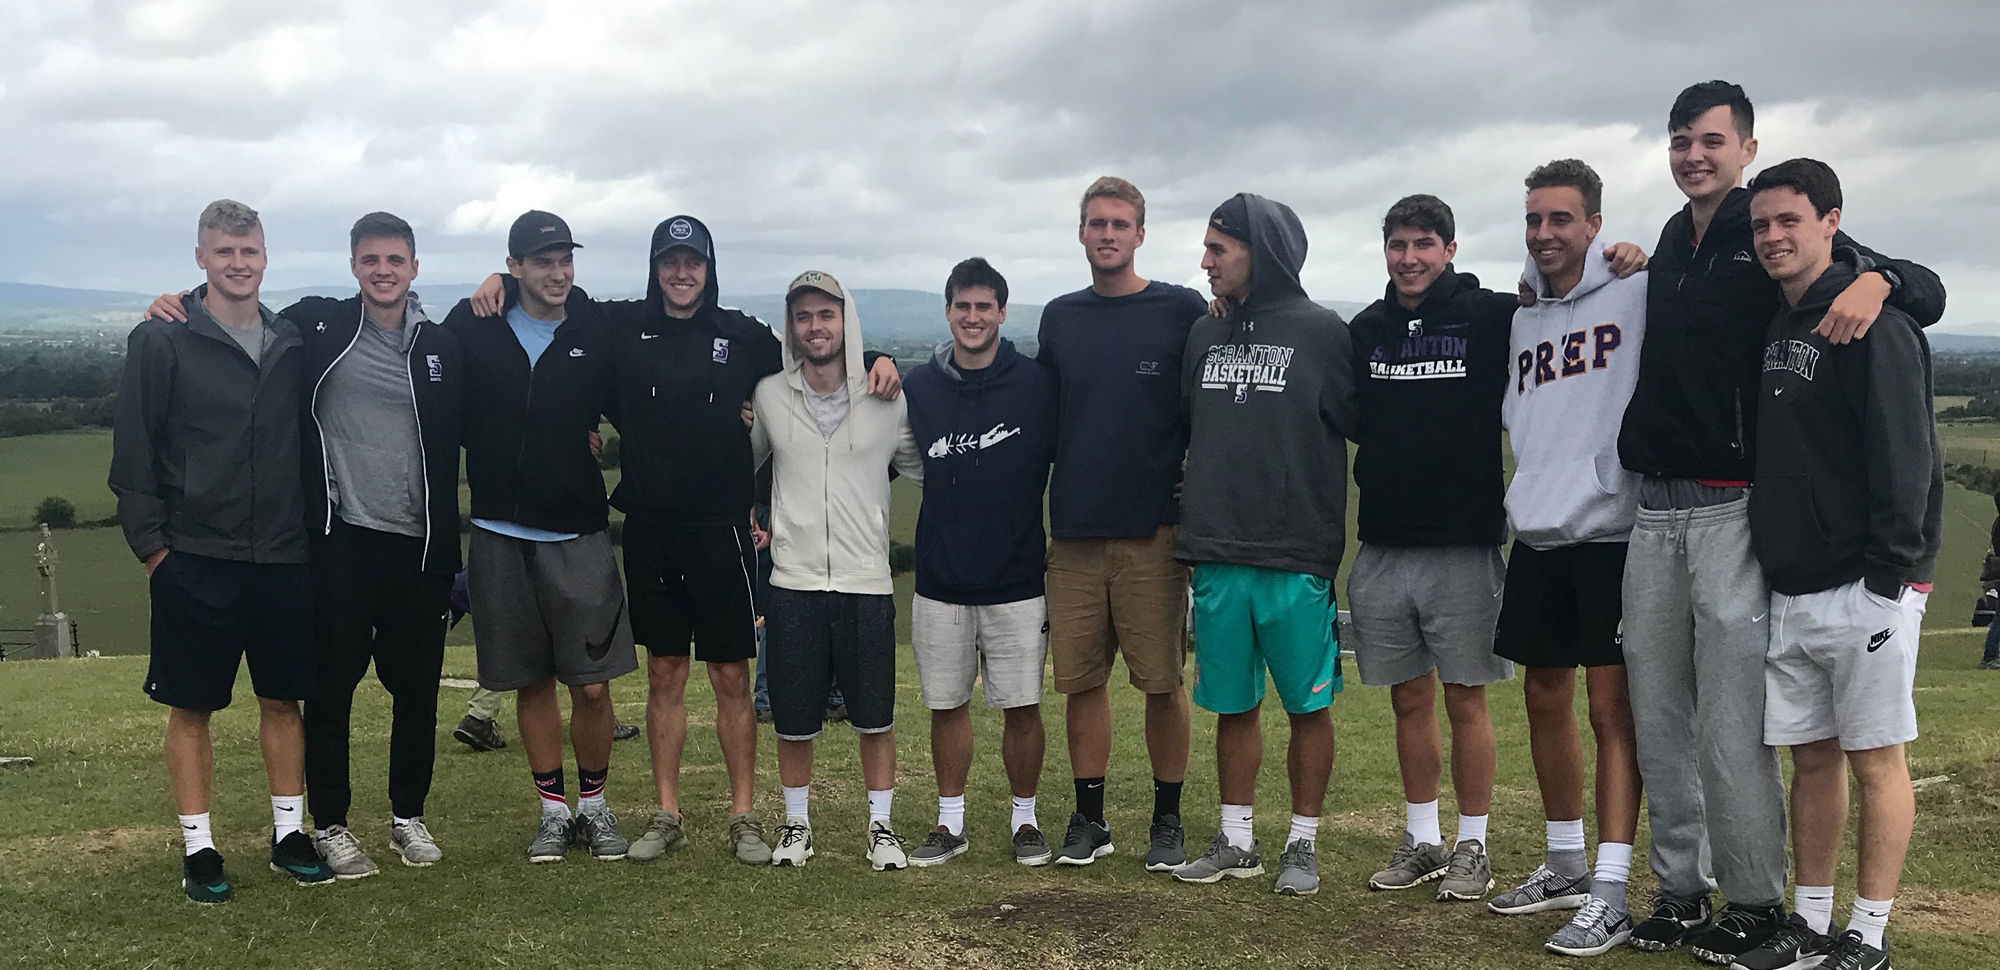 BLOG: Follow Men's Basketball During The Team's Trip To Ireland (Updated Aug. 7)